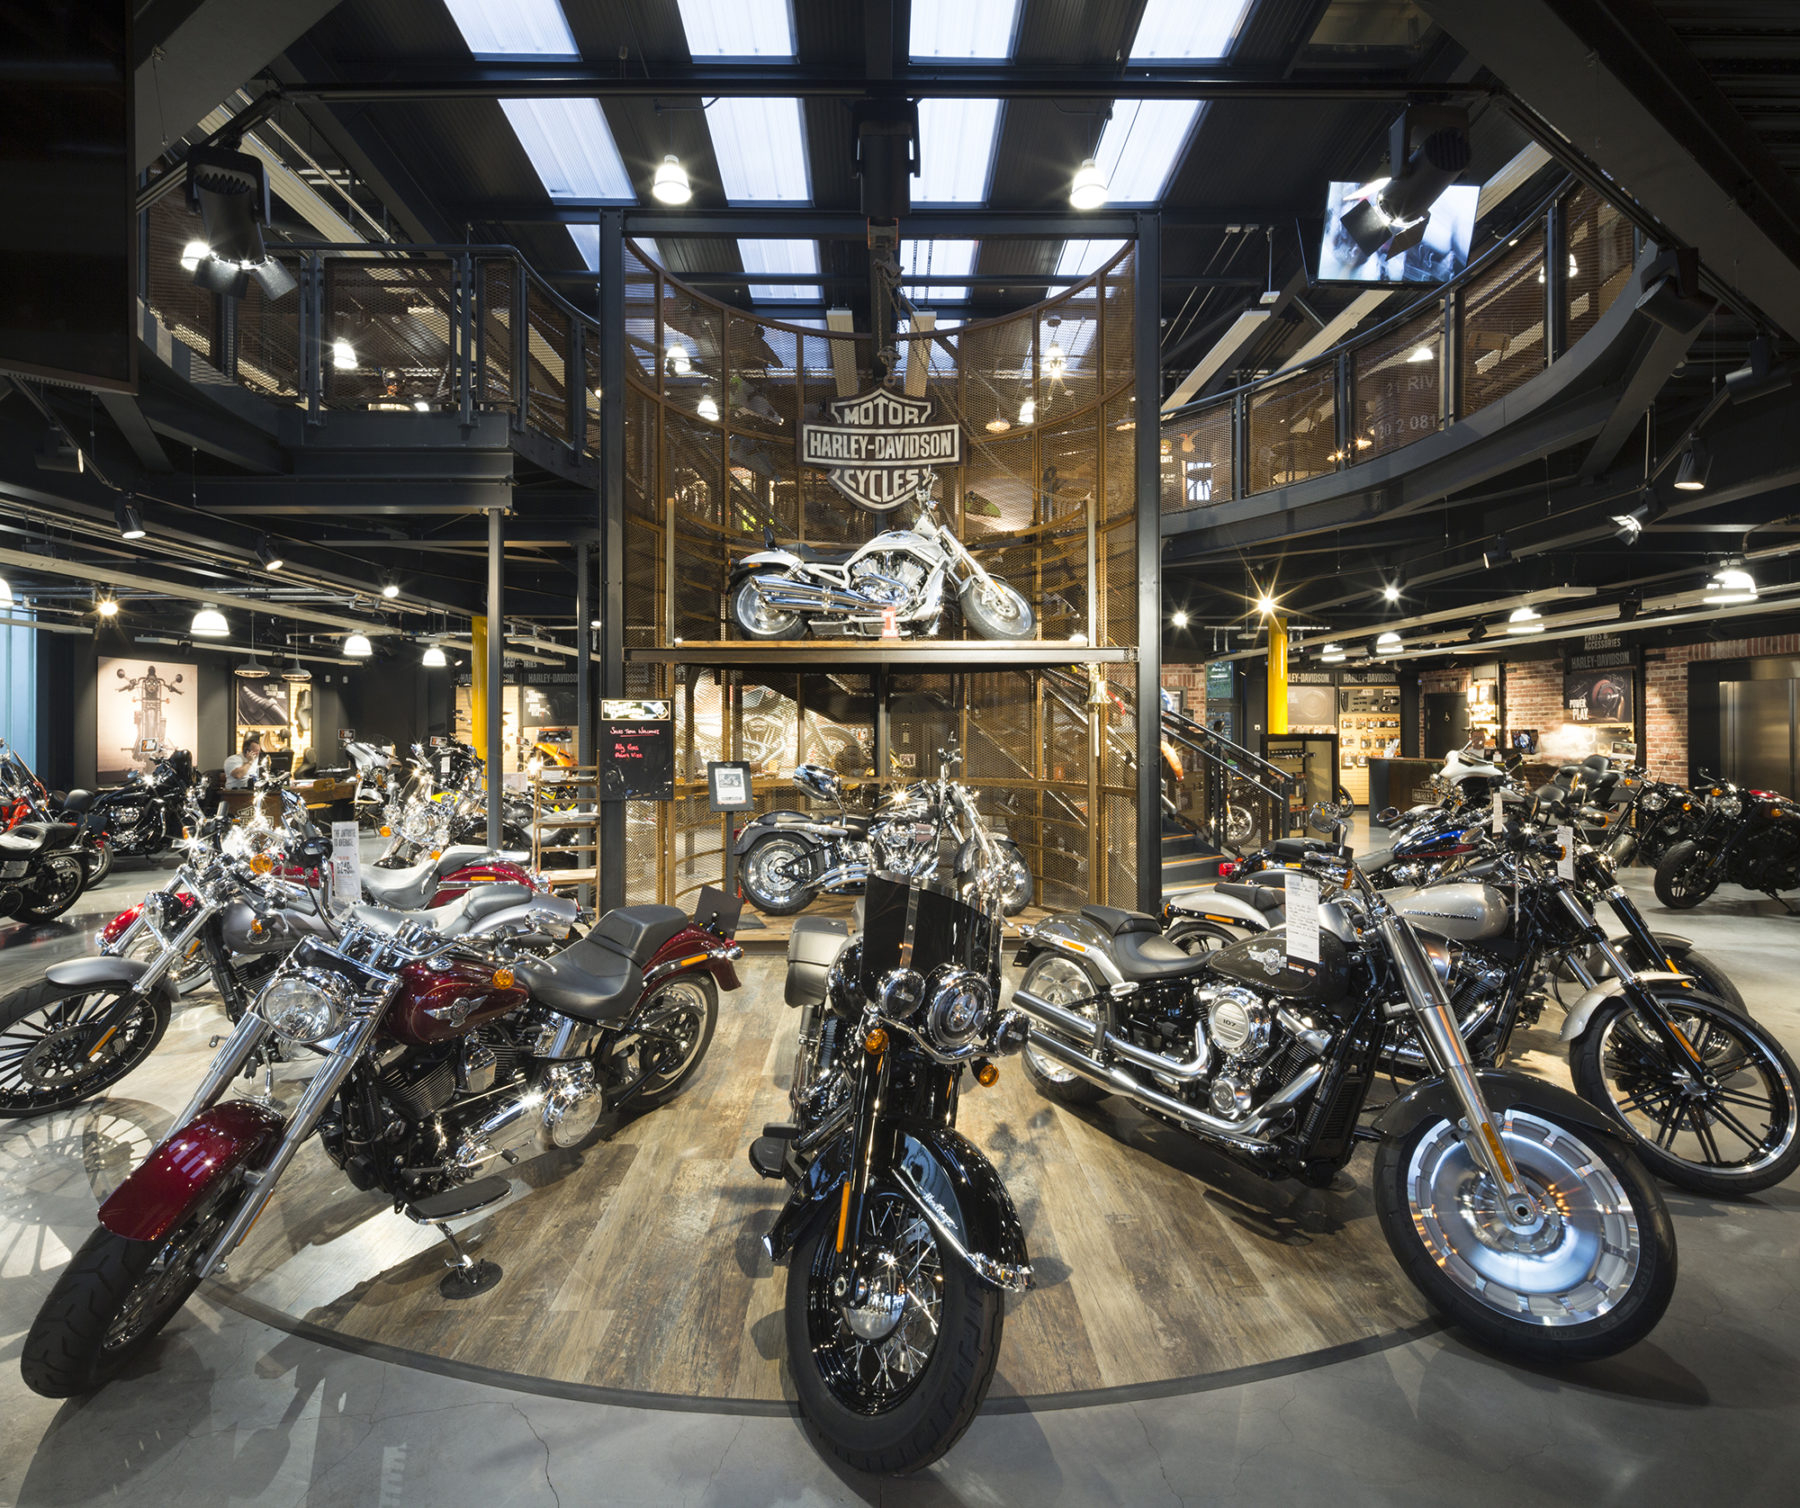 Hillingdon Harley Davidson store | by McAteer Photograph